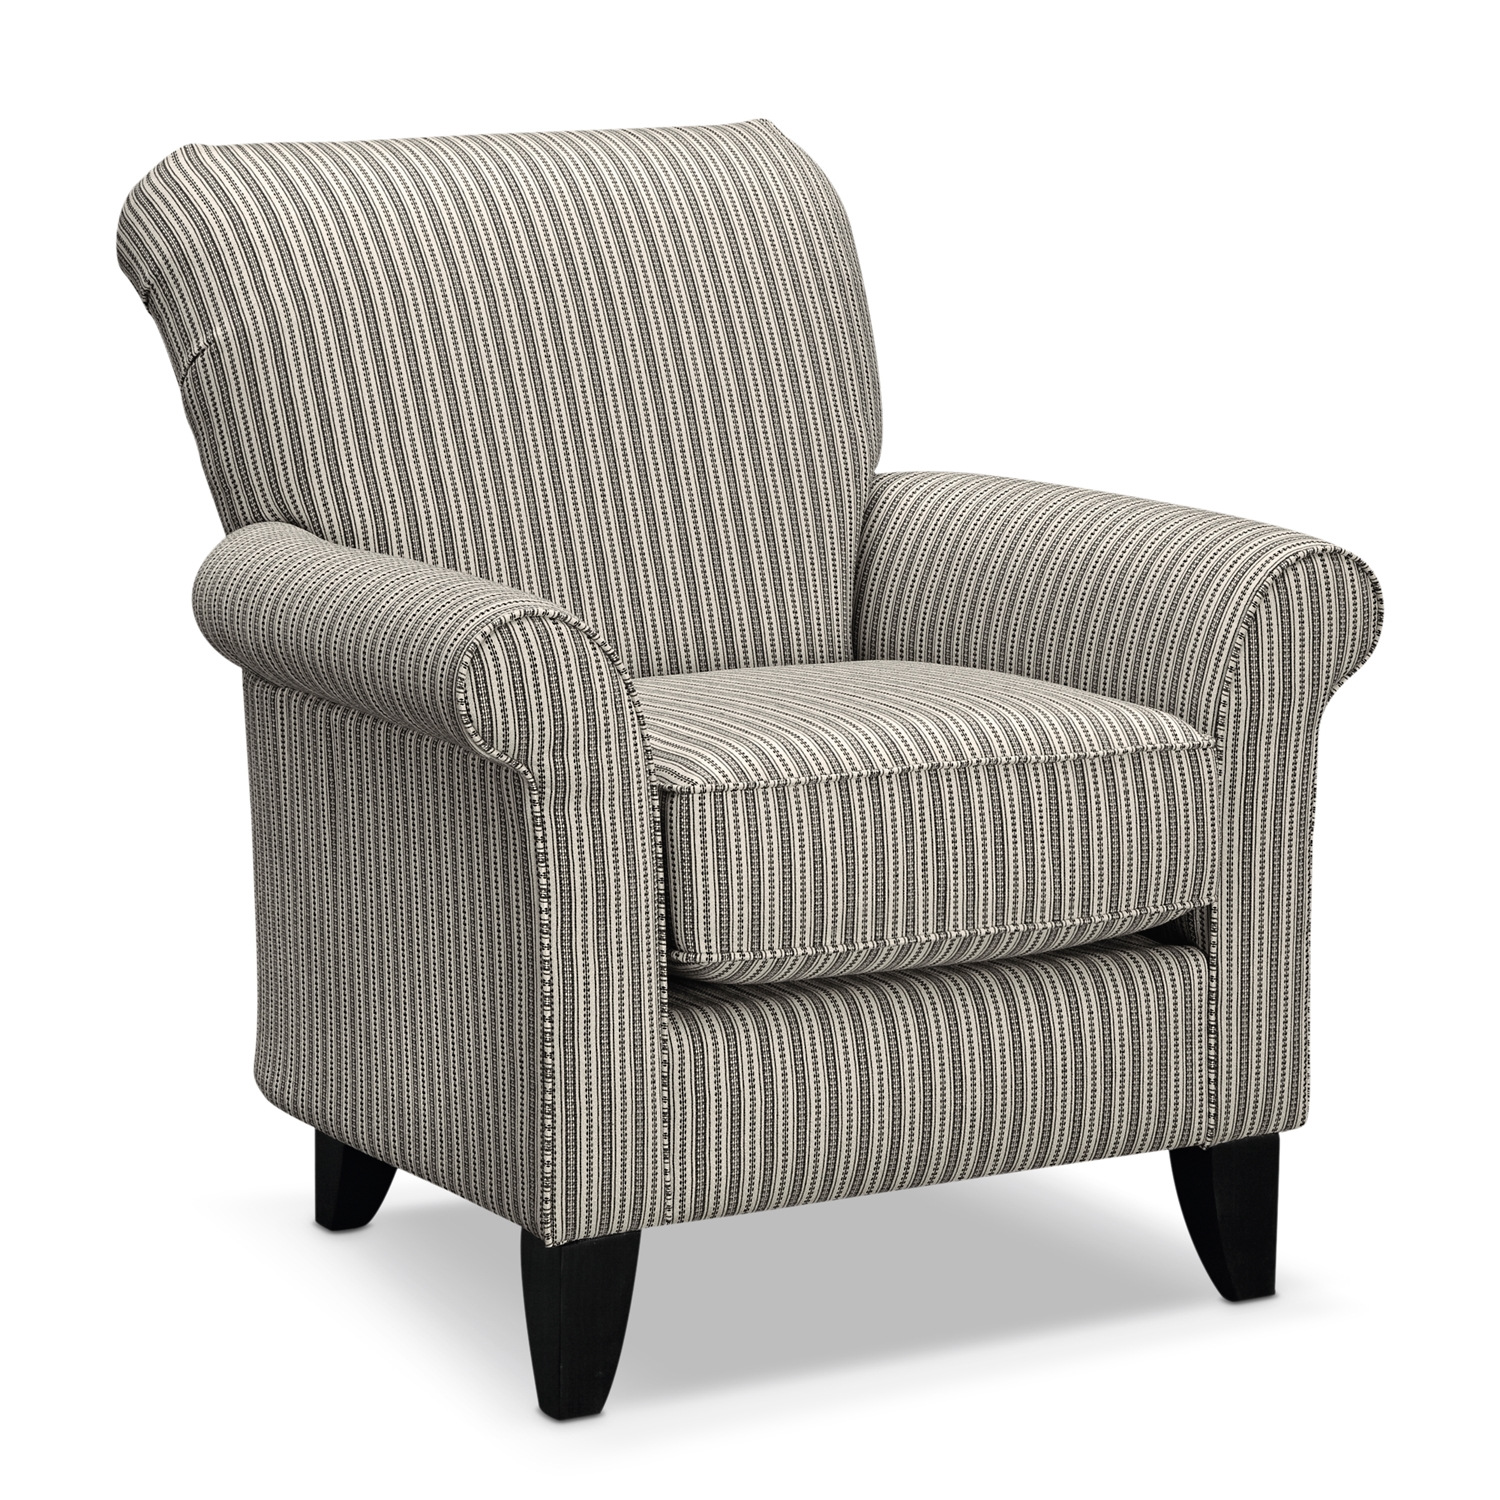 Criterion of Comfortable Chairs for Living Room